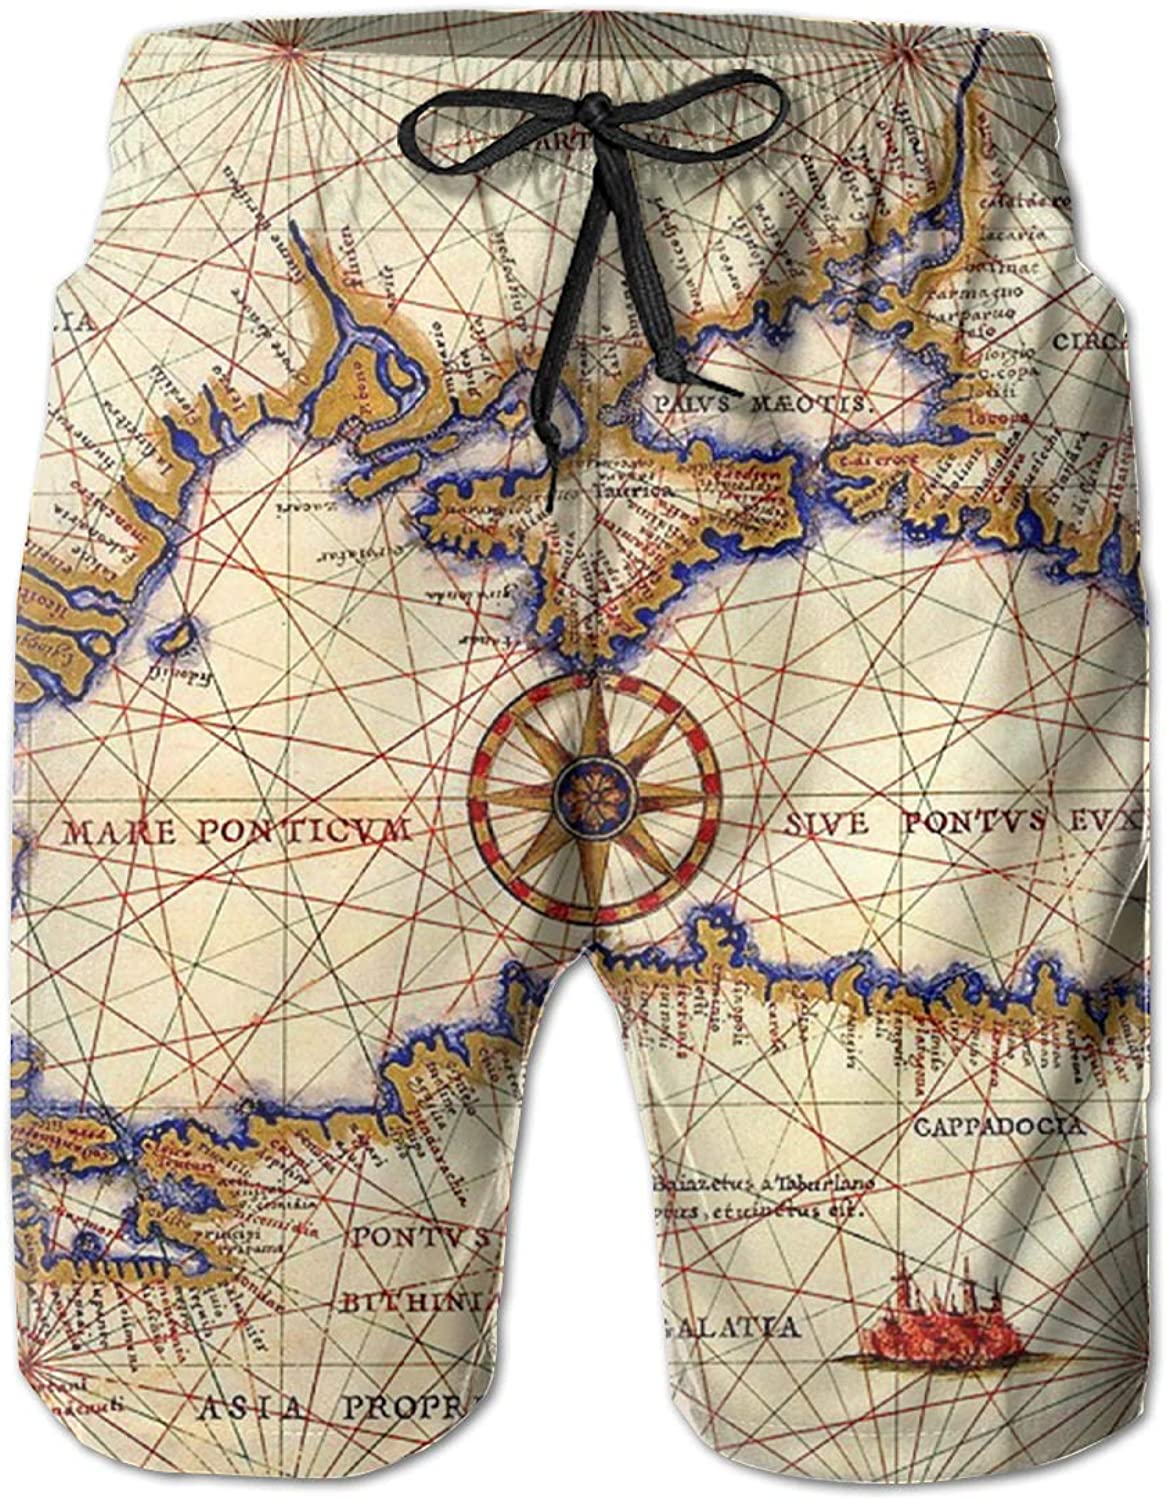 5594afa8923cf ROLLING HOP Men's Cool Swim Trunks Intricate Map Beach Board Board Board  Shorts for Outside Home with Pockets 7d2593